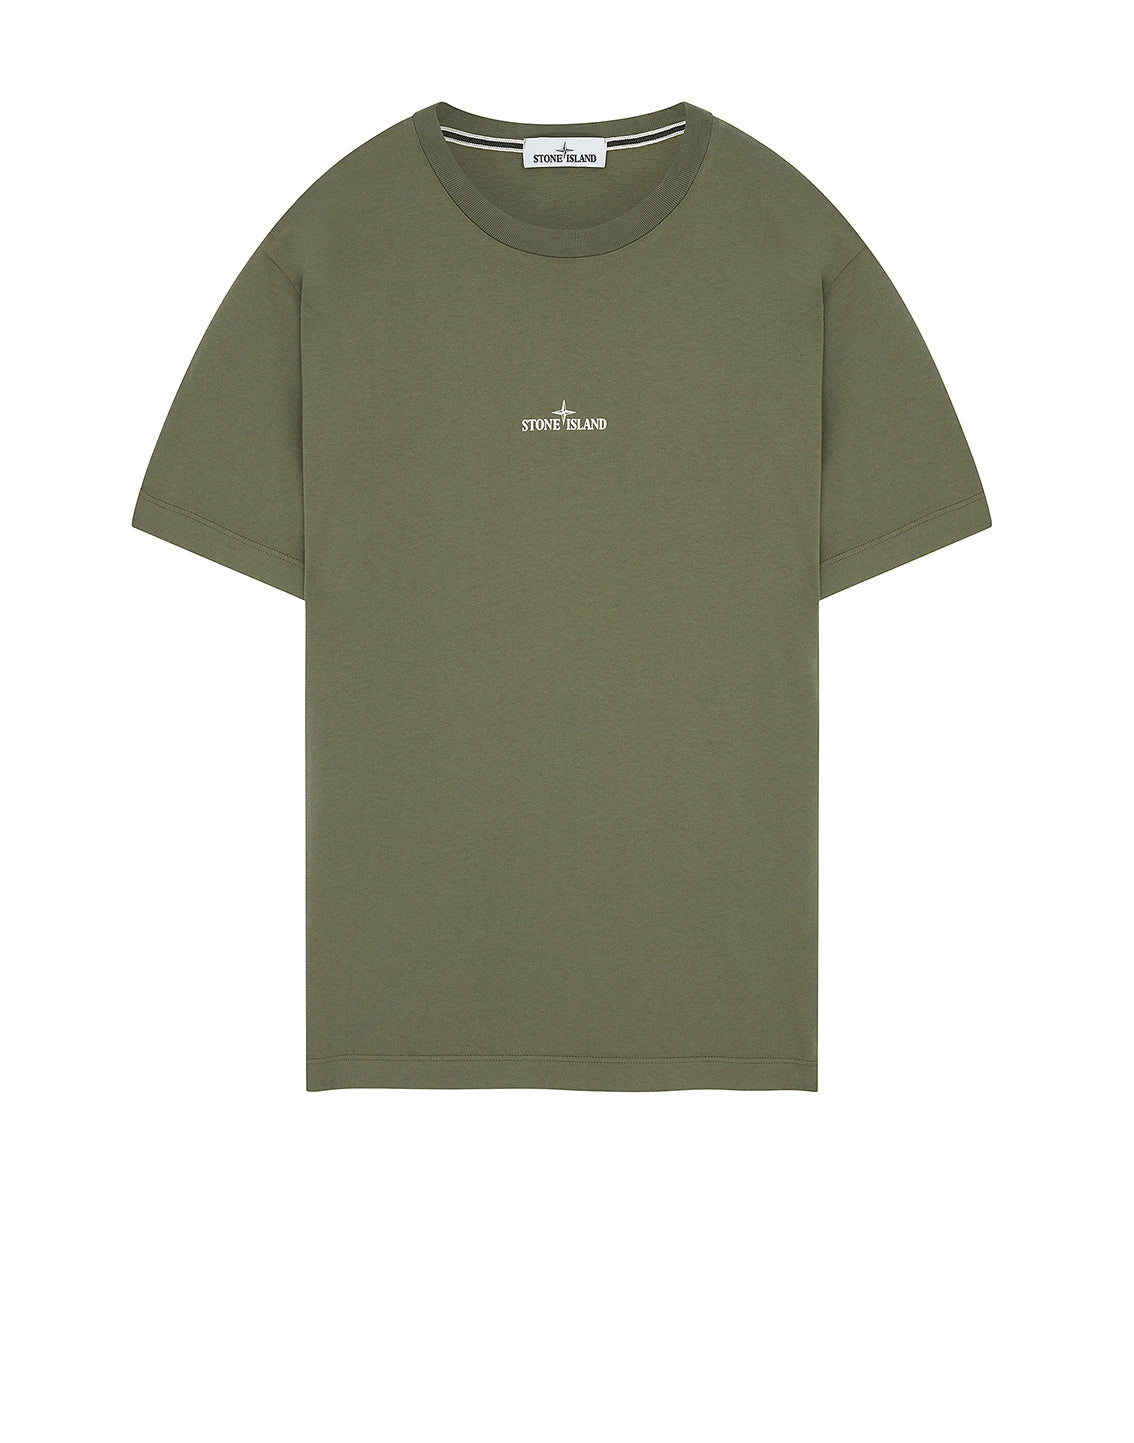 2NS84 'DRONE TWO' T-Shirt in Olive